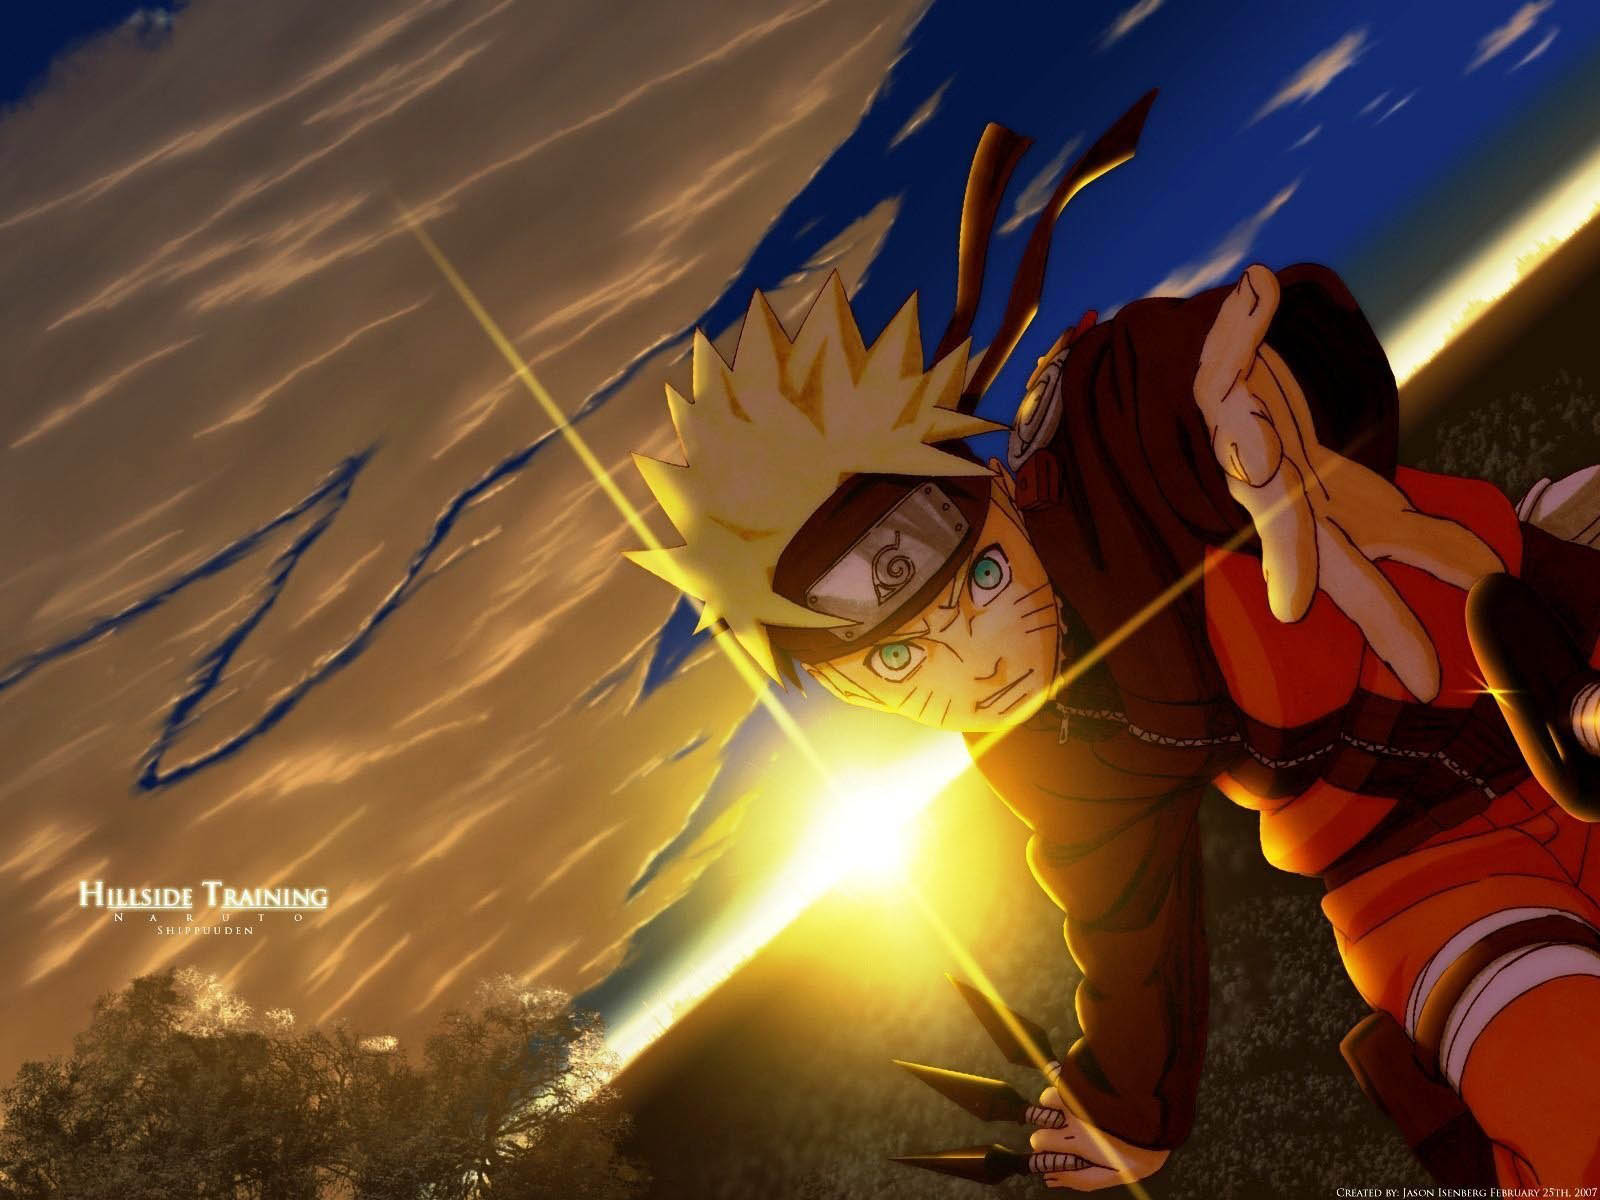 Naruto Shippuden Wallpapers - Funny Photos | Funny mages Gallery